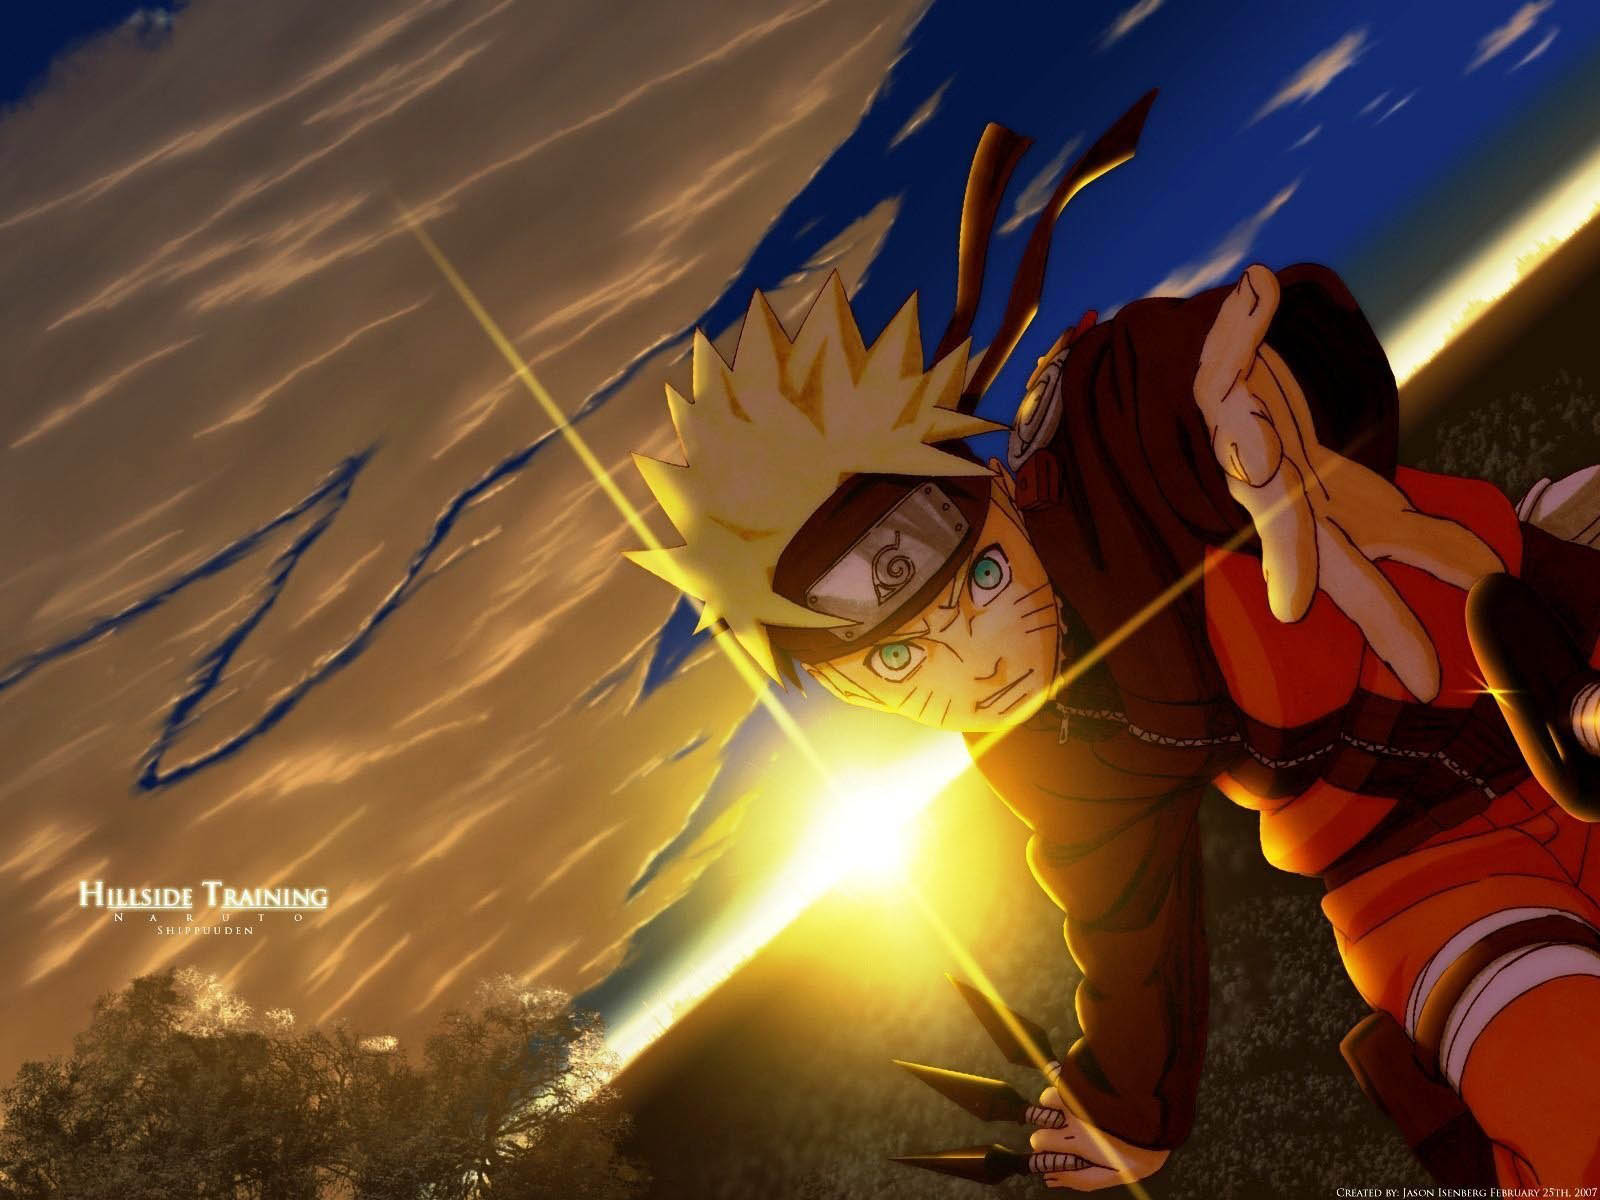 Naruto Shippuden Wallpapers - Funny Photos | Funny mages Gallery